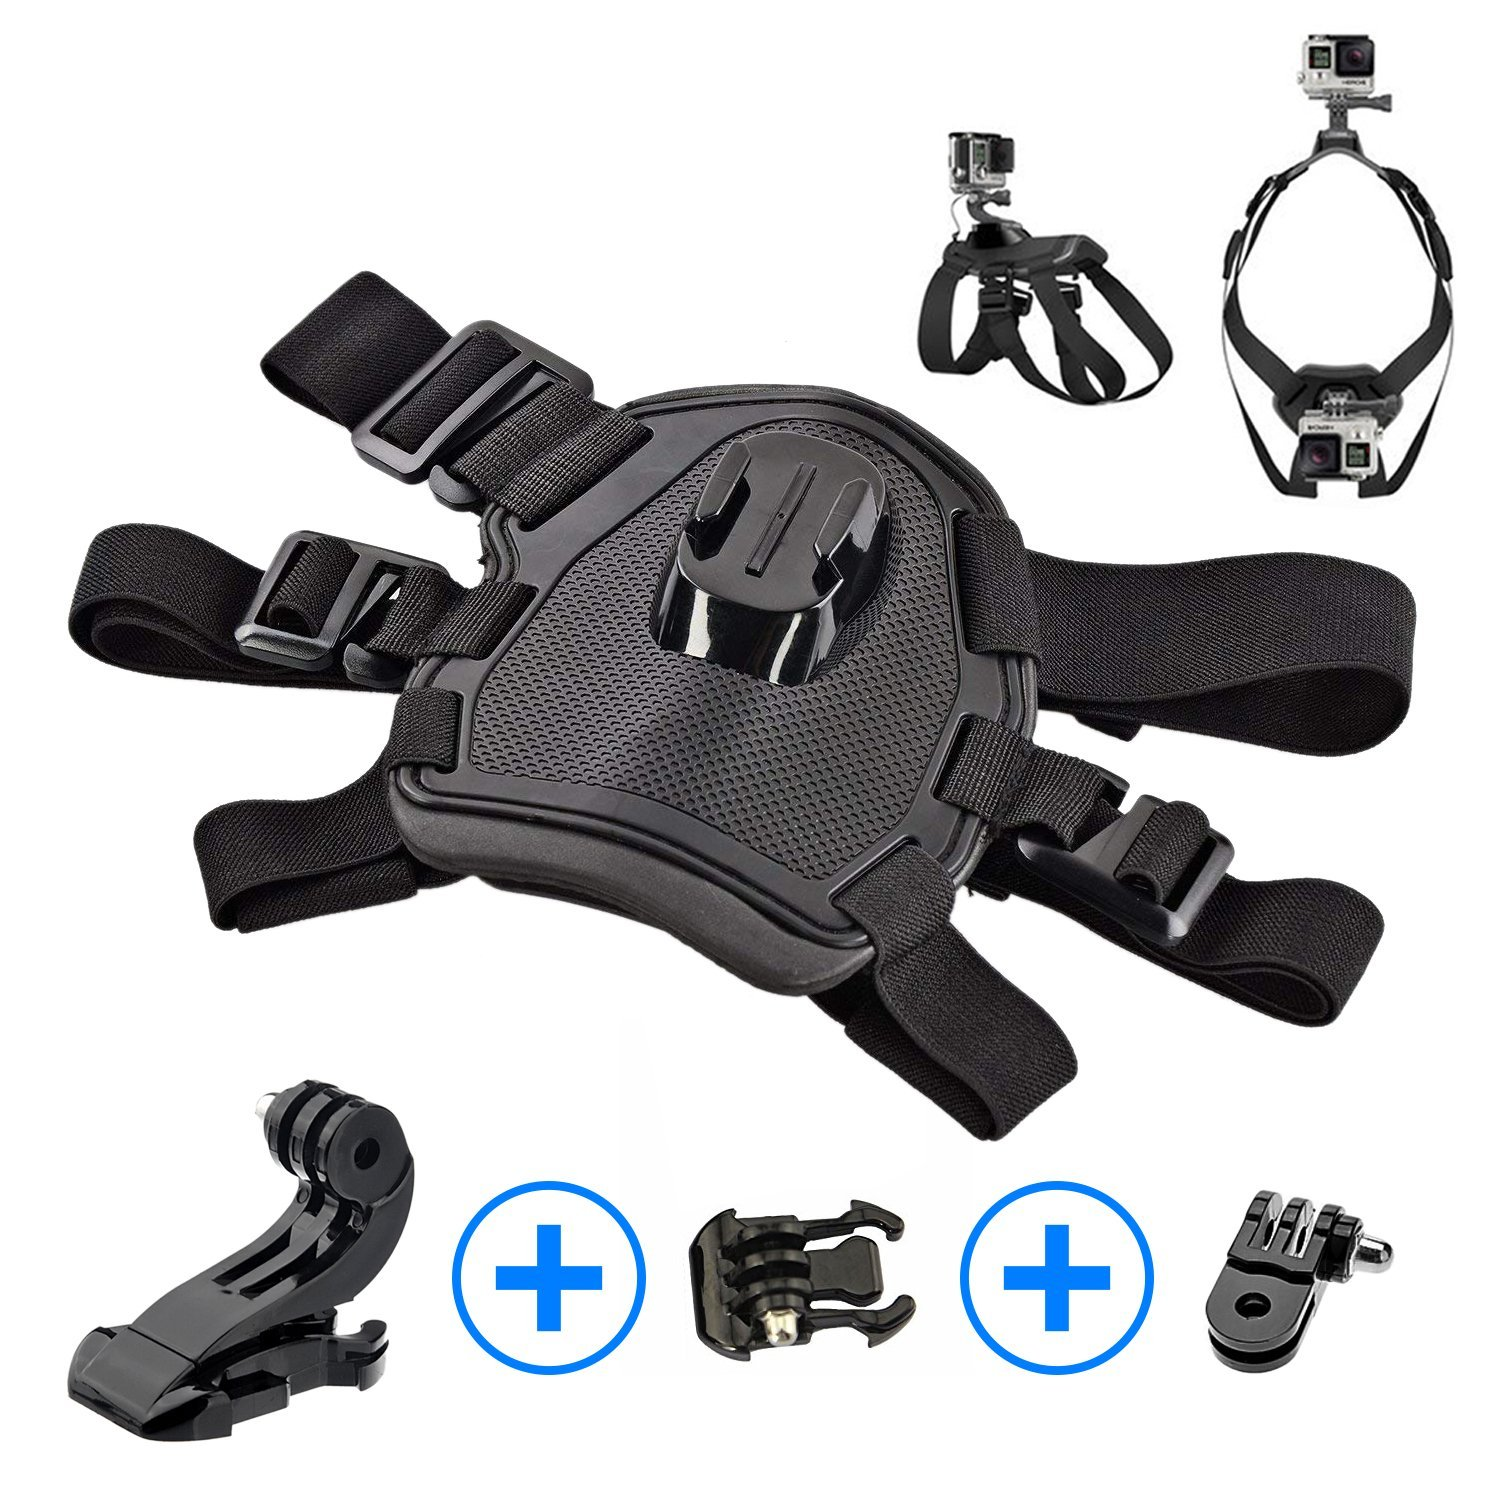 Sports Action Camera Adjustable Dog Harness with Chest and Back Mounts For GoPro HERO 6, 5, 4 Session 4, 3, 2, 1 | Dogs POV, Point Of View | Includes BONUS 90° Mount {-Crinco-}